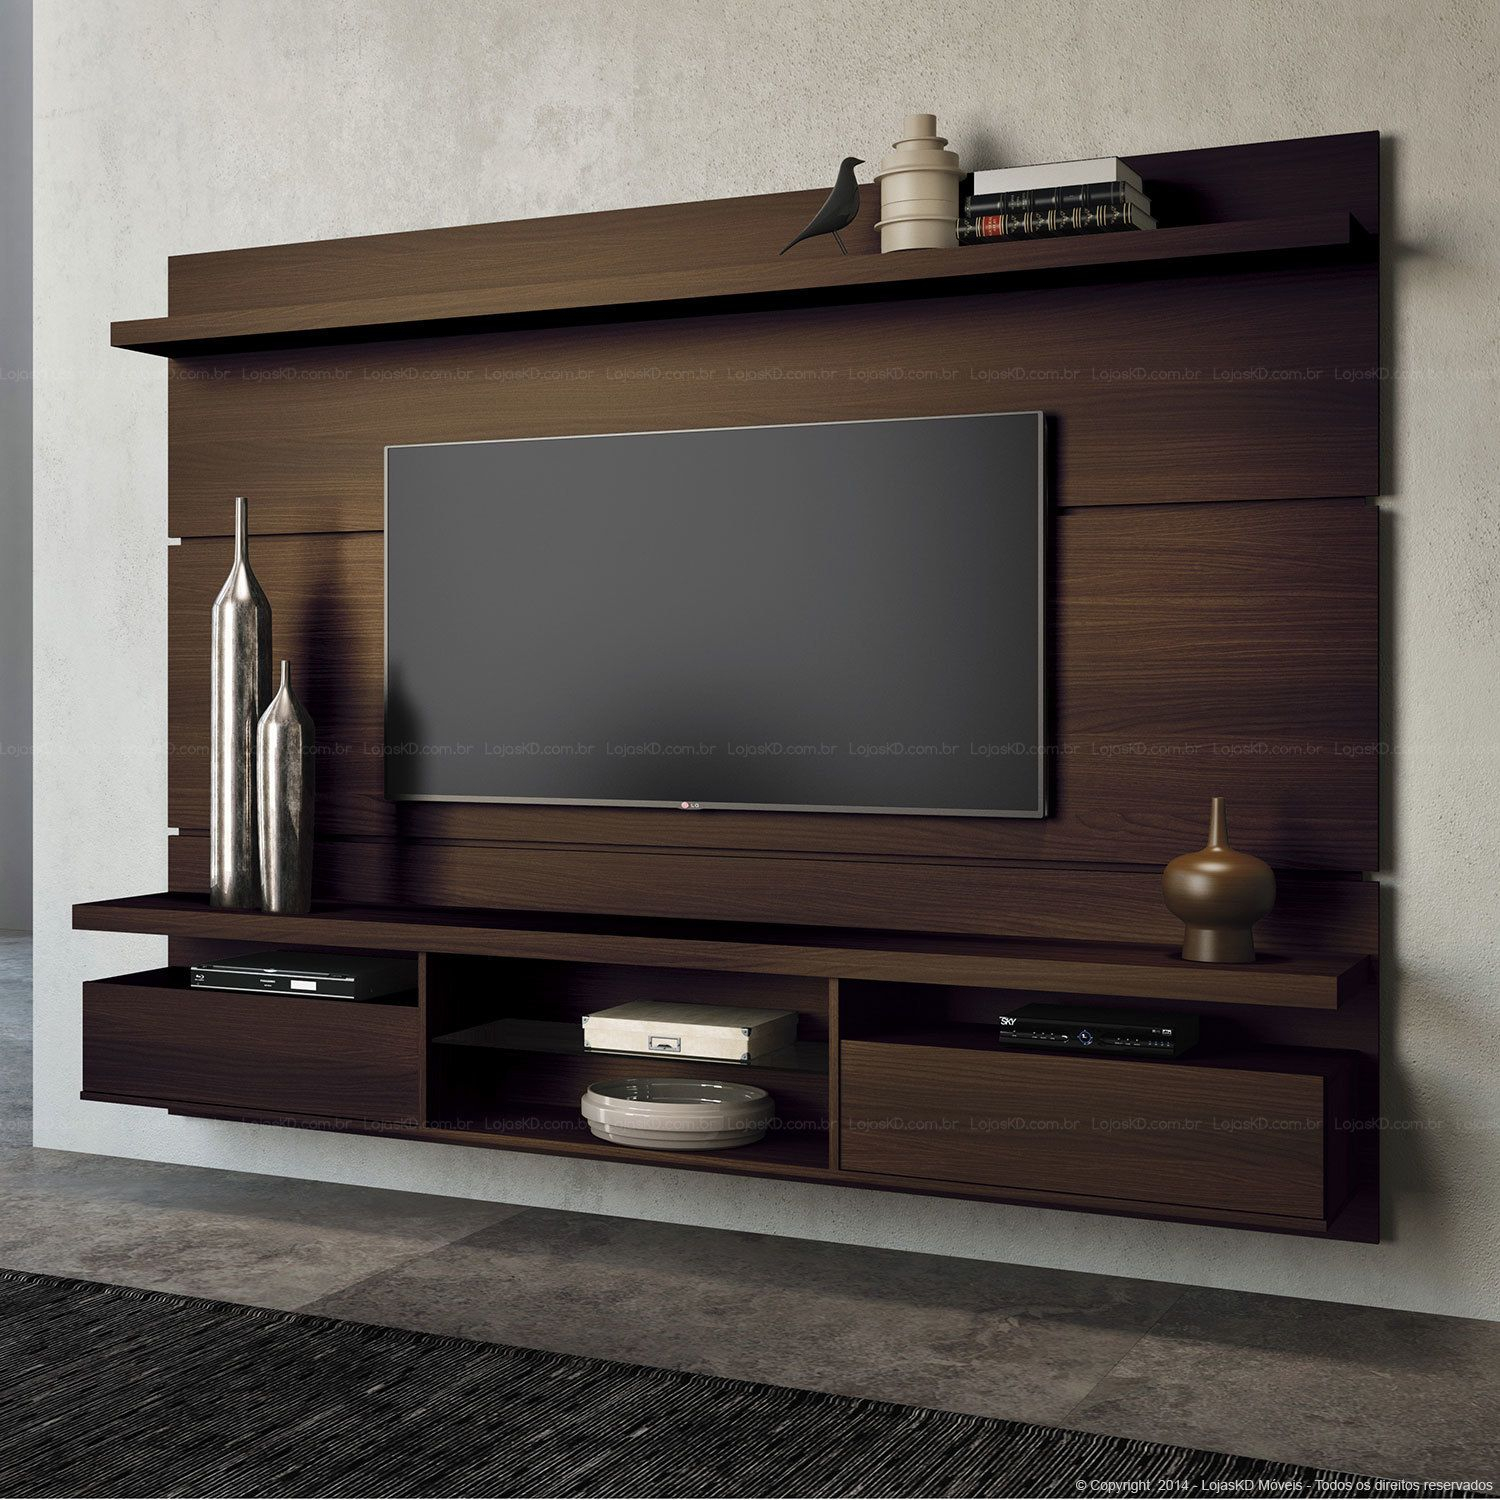 Tv Wall Mount Style Ideas To Combine With Your Attractive And Pertaining To Kilian Black 60 Inch Tv Stands (View 3 of 30)